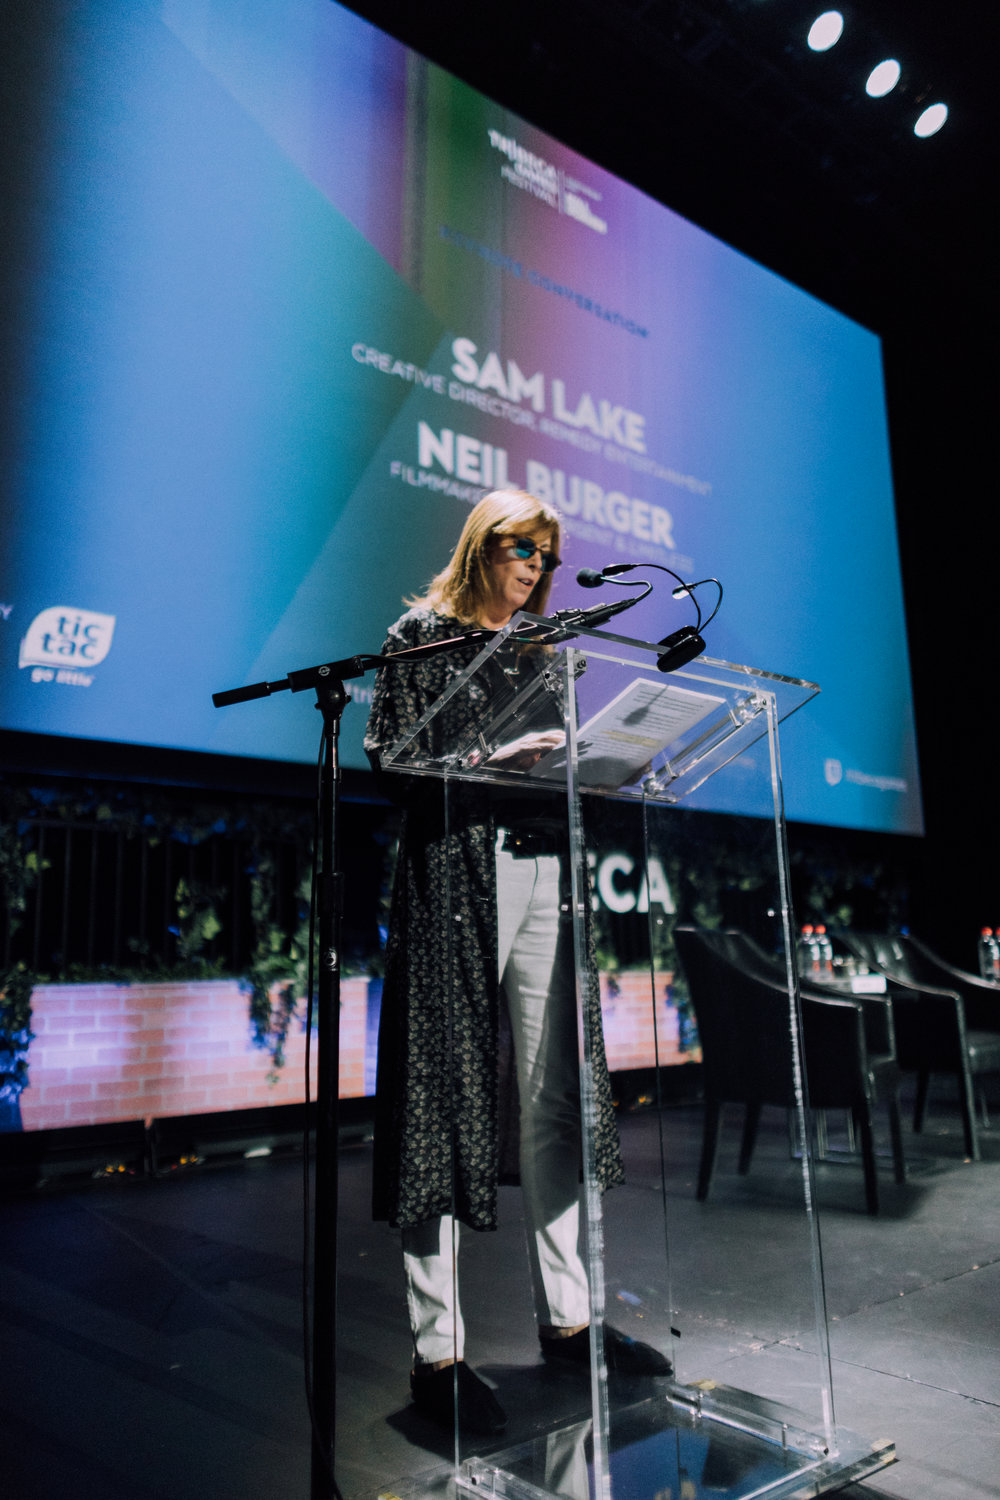 Tribeca Film Festival co-founder Jane Rosenthal delivers opening remarks introducing the keynote speakers at the inaugural Tribeca Games Festival. Photo credit: @jive for @streetdreamsmag